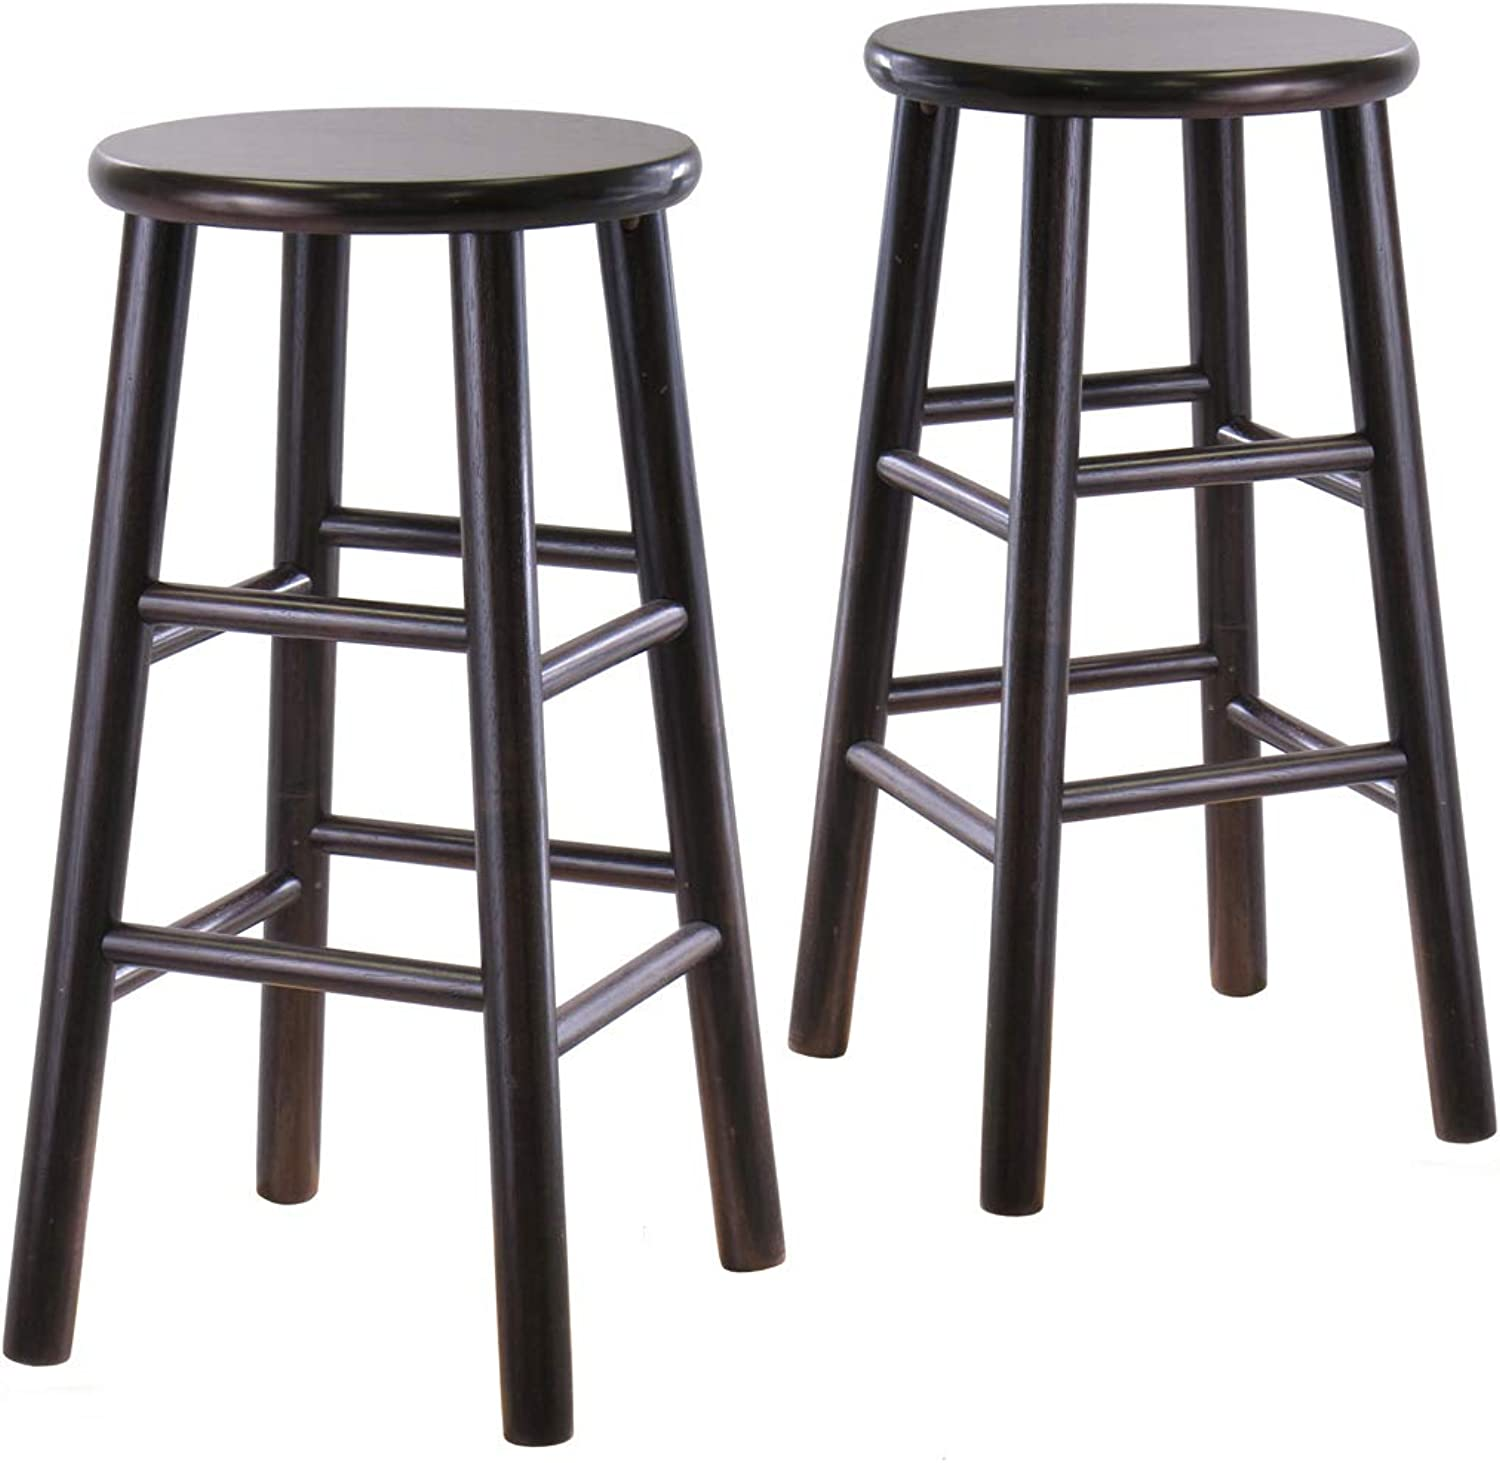 (60cm) - Winsome Wood S 2 Wood 60cm Stools, Espresso Finish